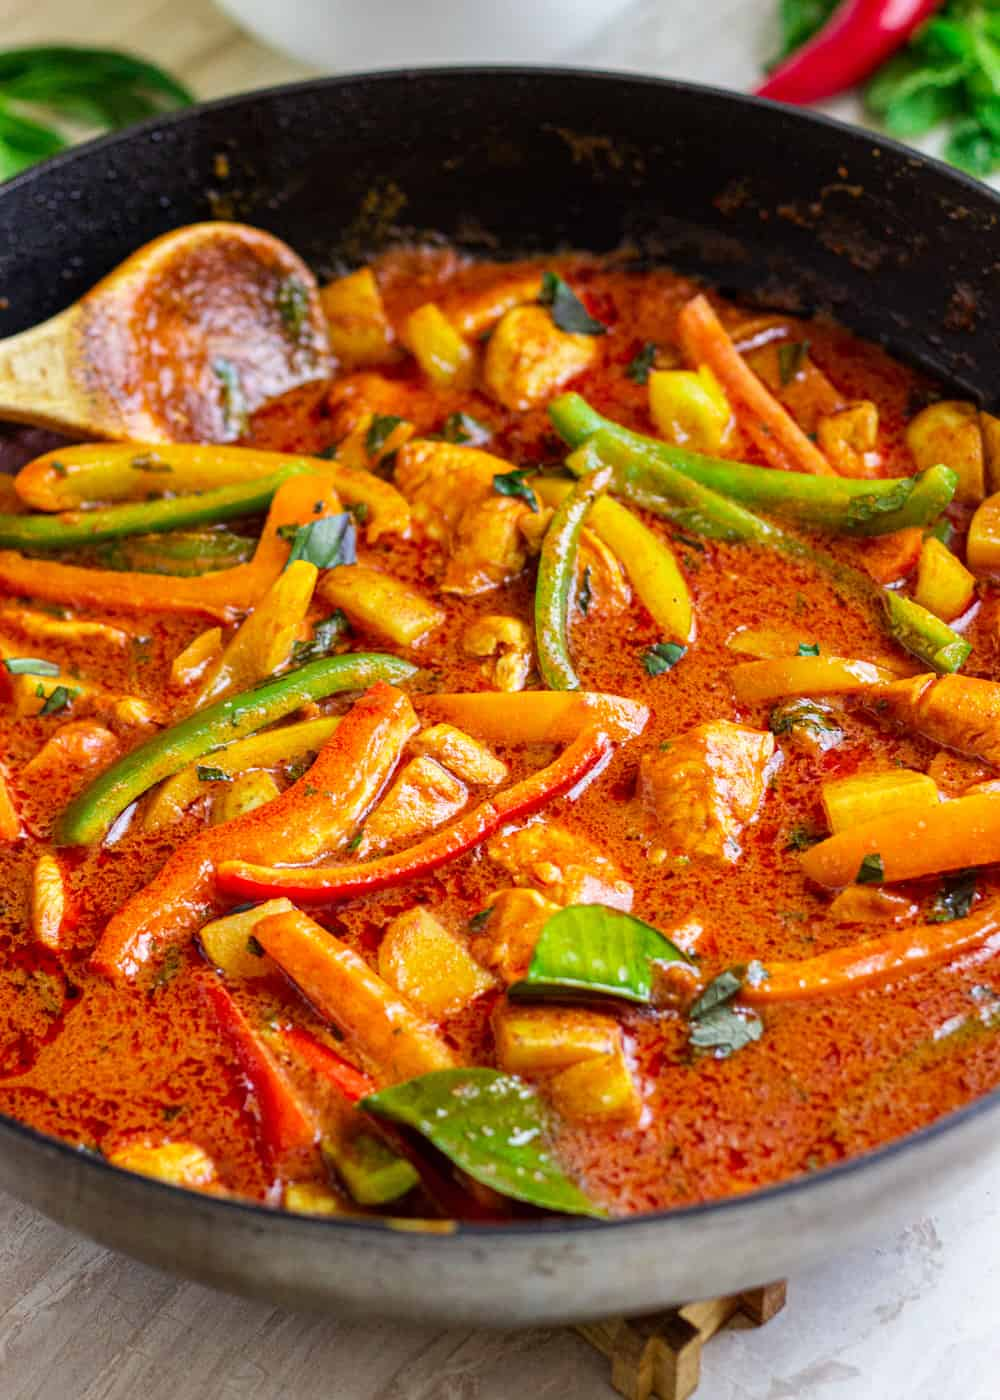 A pan filled with meat and vegetables, with Red curry